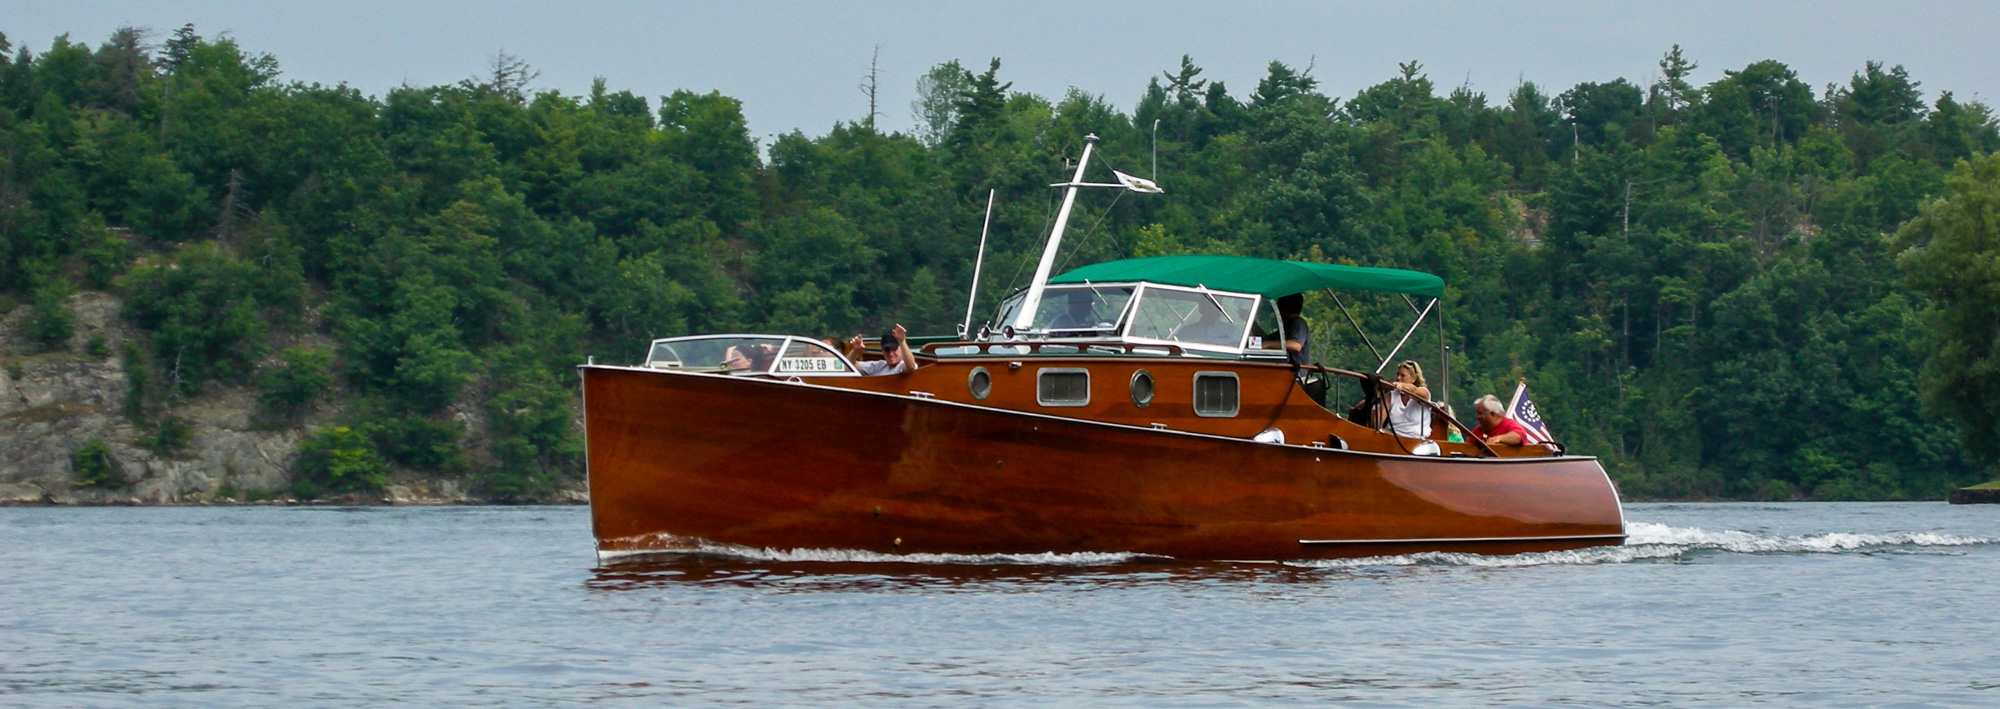 The wooden boat, Zipper, cruises the 1000 Islands